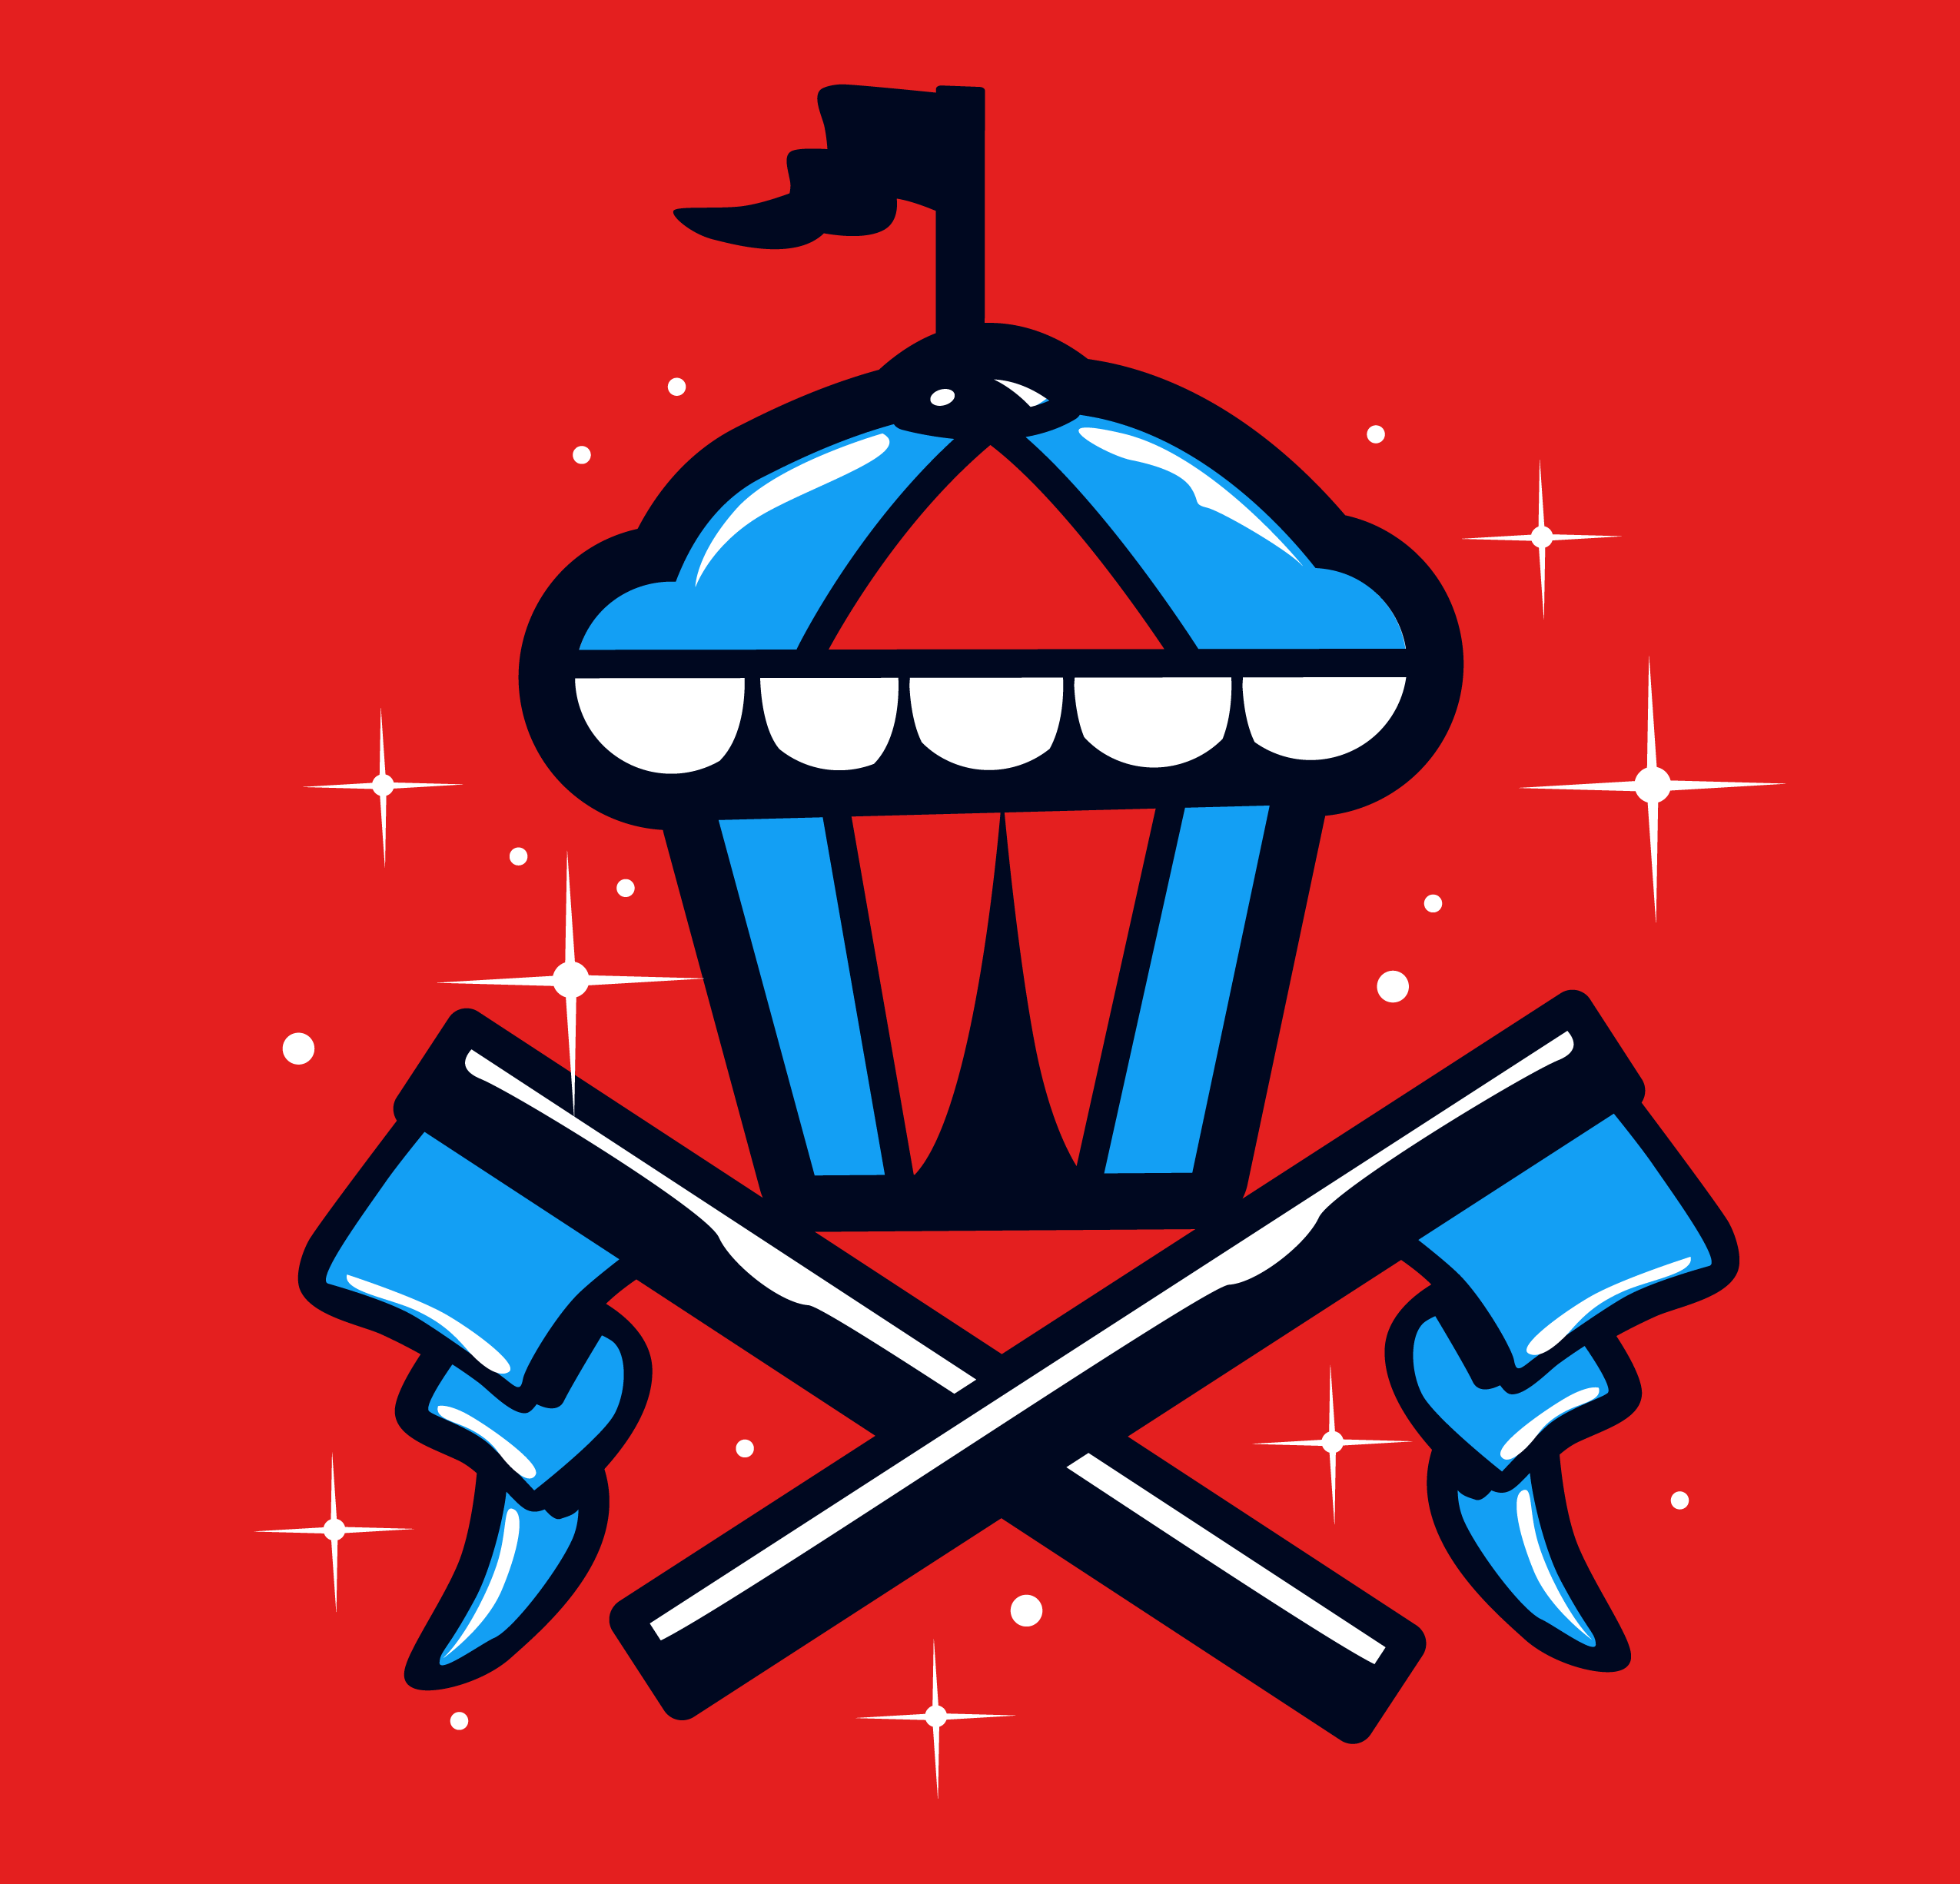 Sugar Coated x Johnny Cupcakes  - image 4 - student project